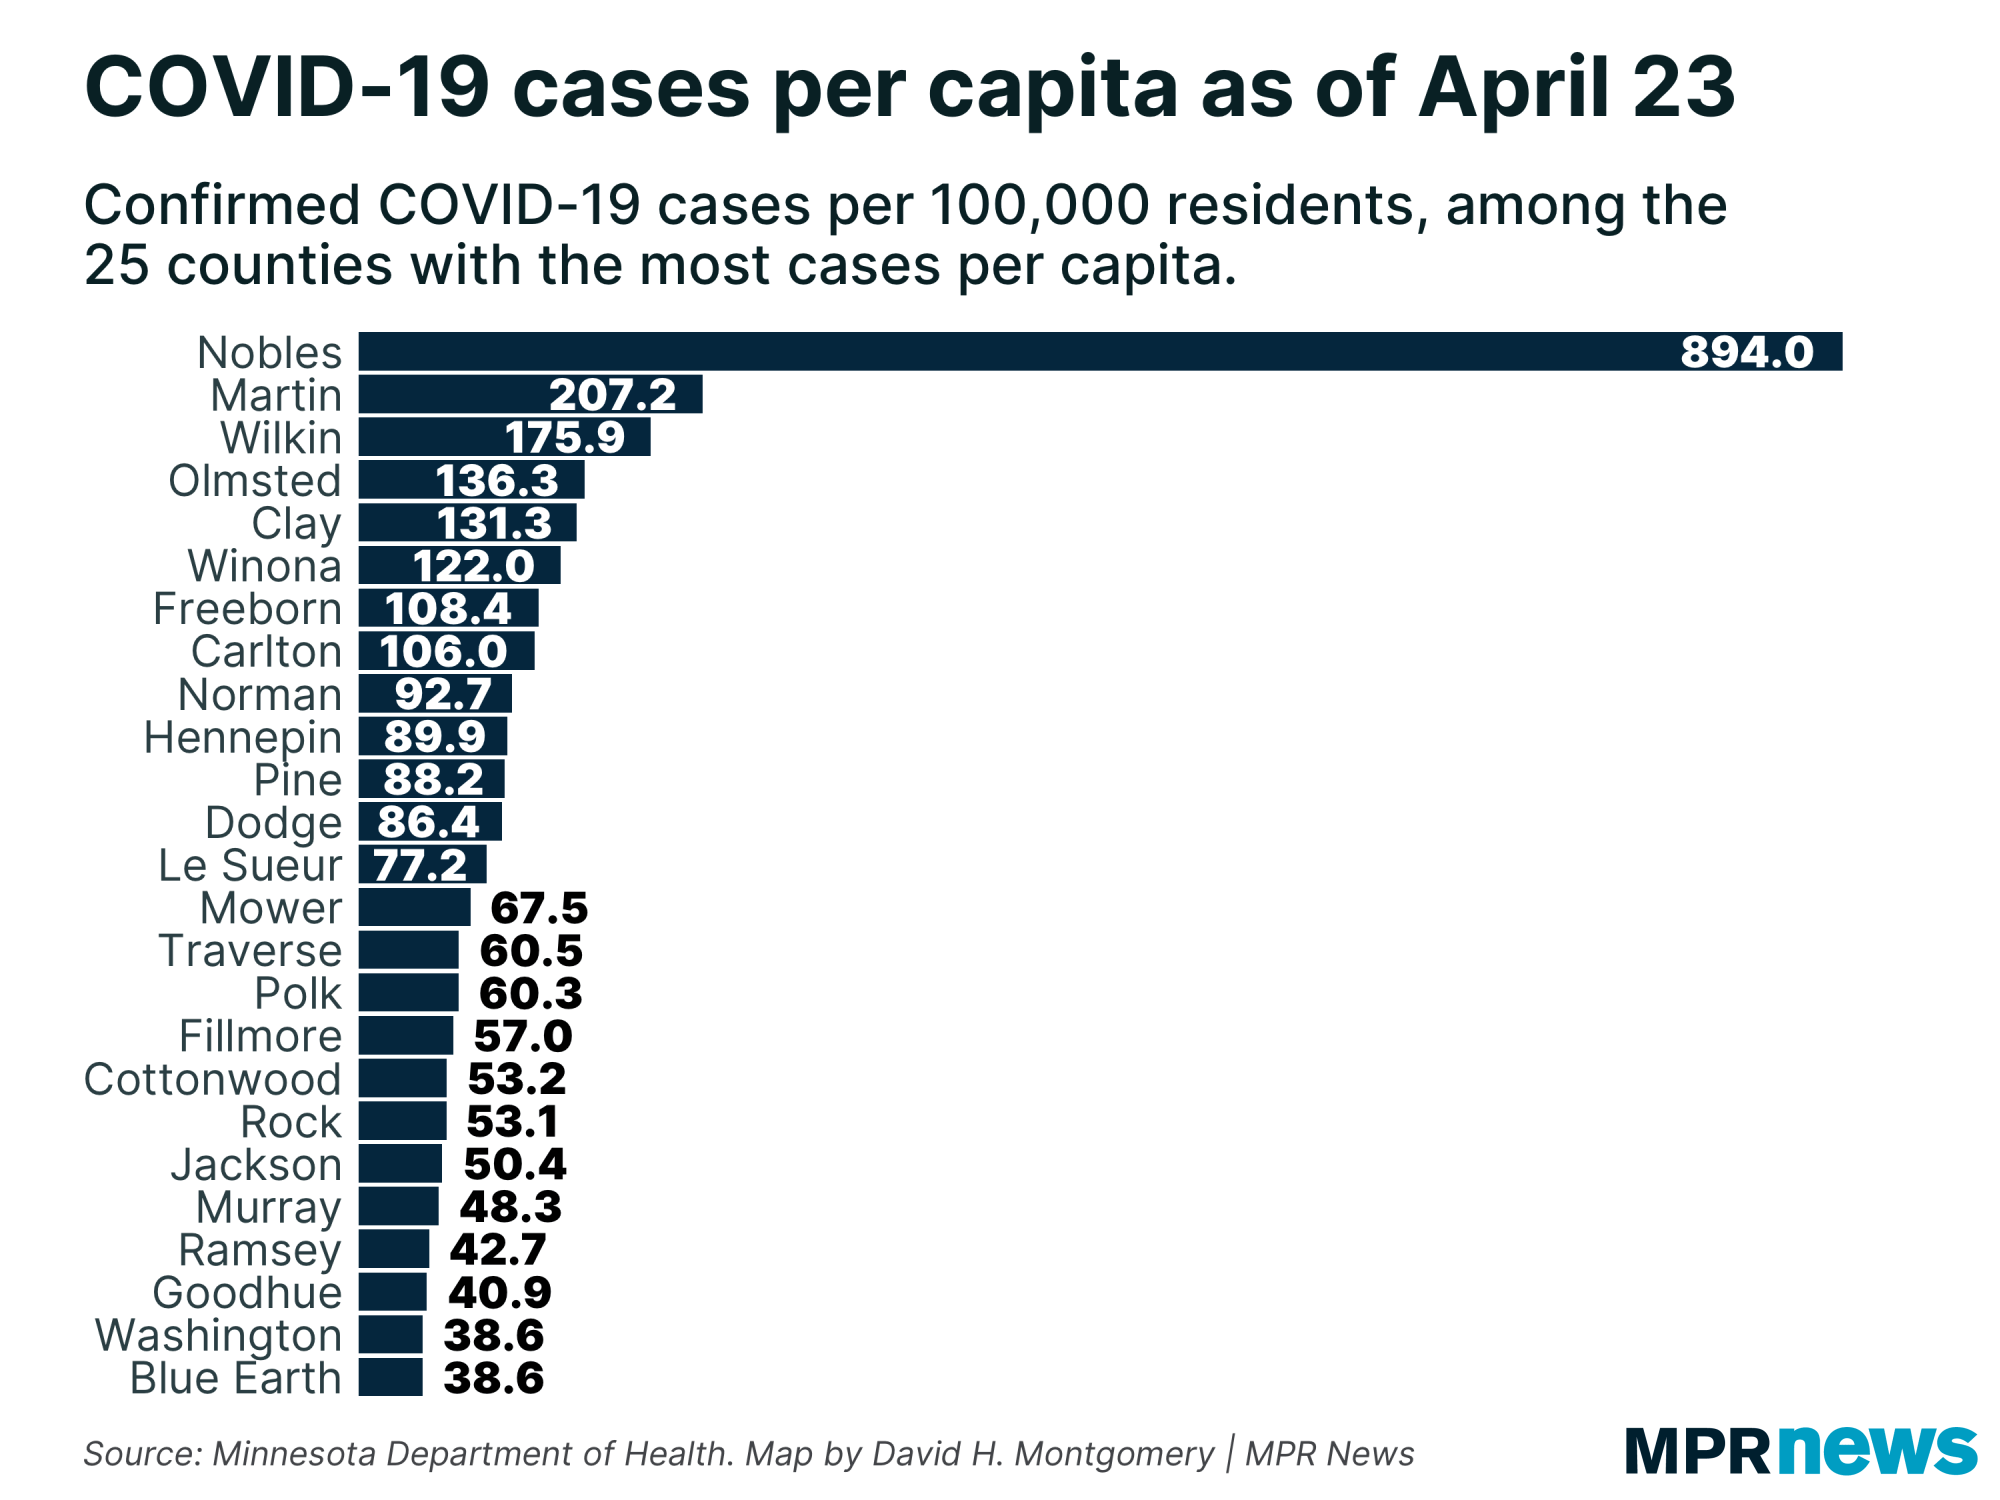 COVID-19 cases per capita in Minnesota counties